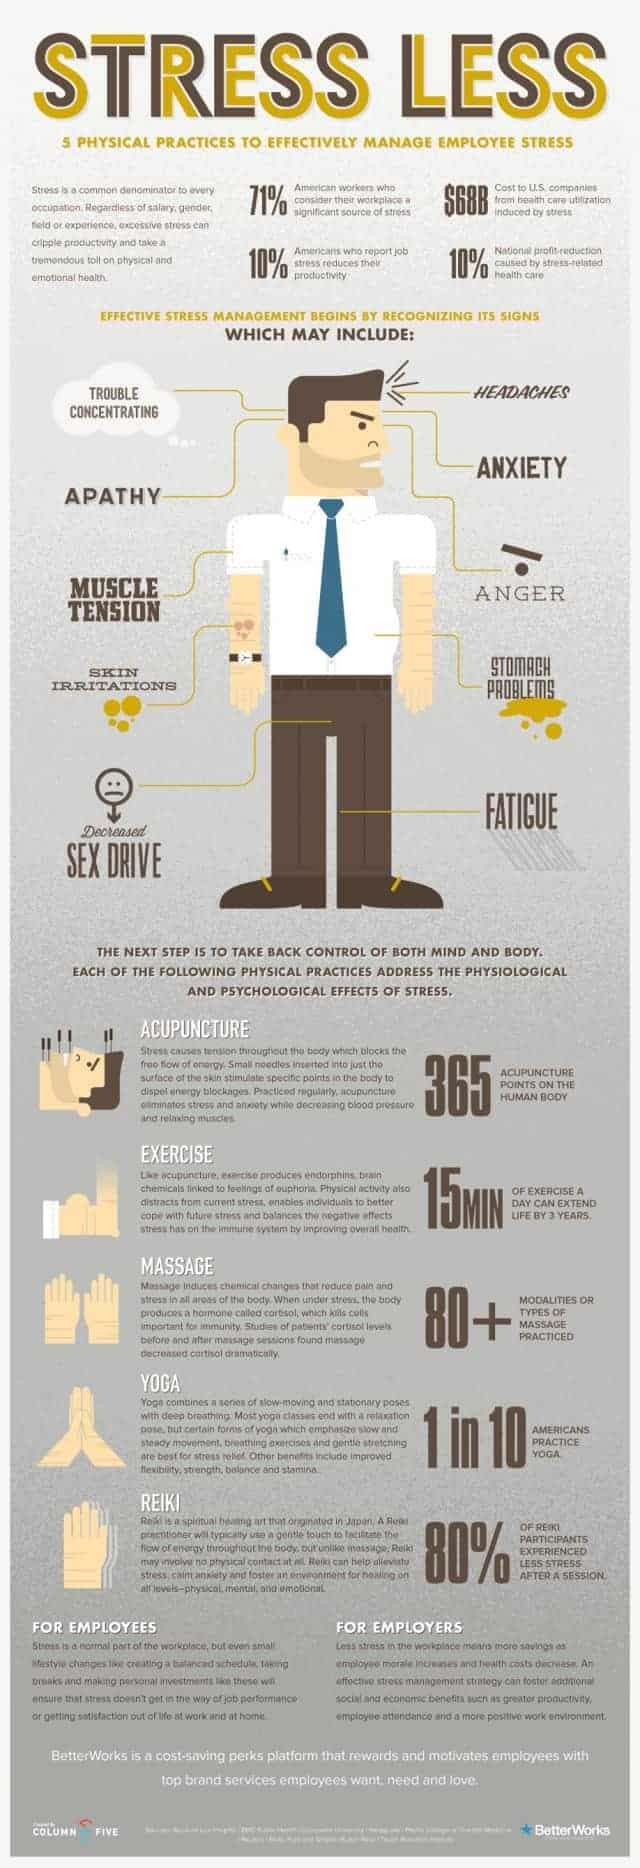 infographic3A-betterworks-stress-2011-confused-640x1868